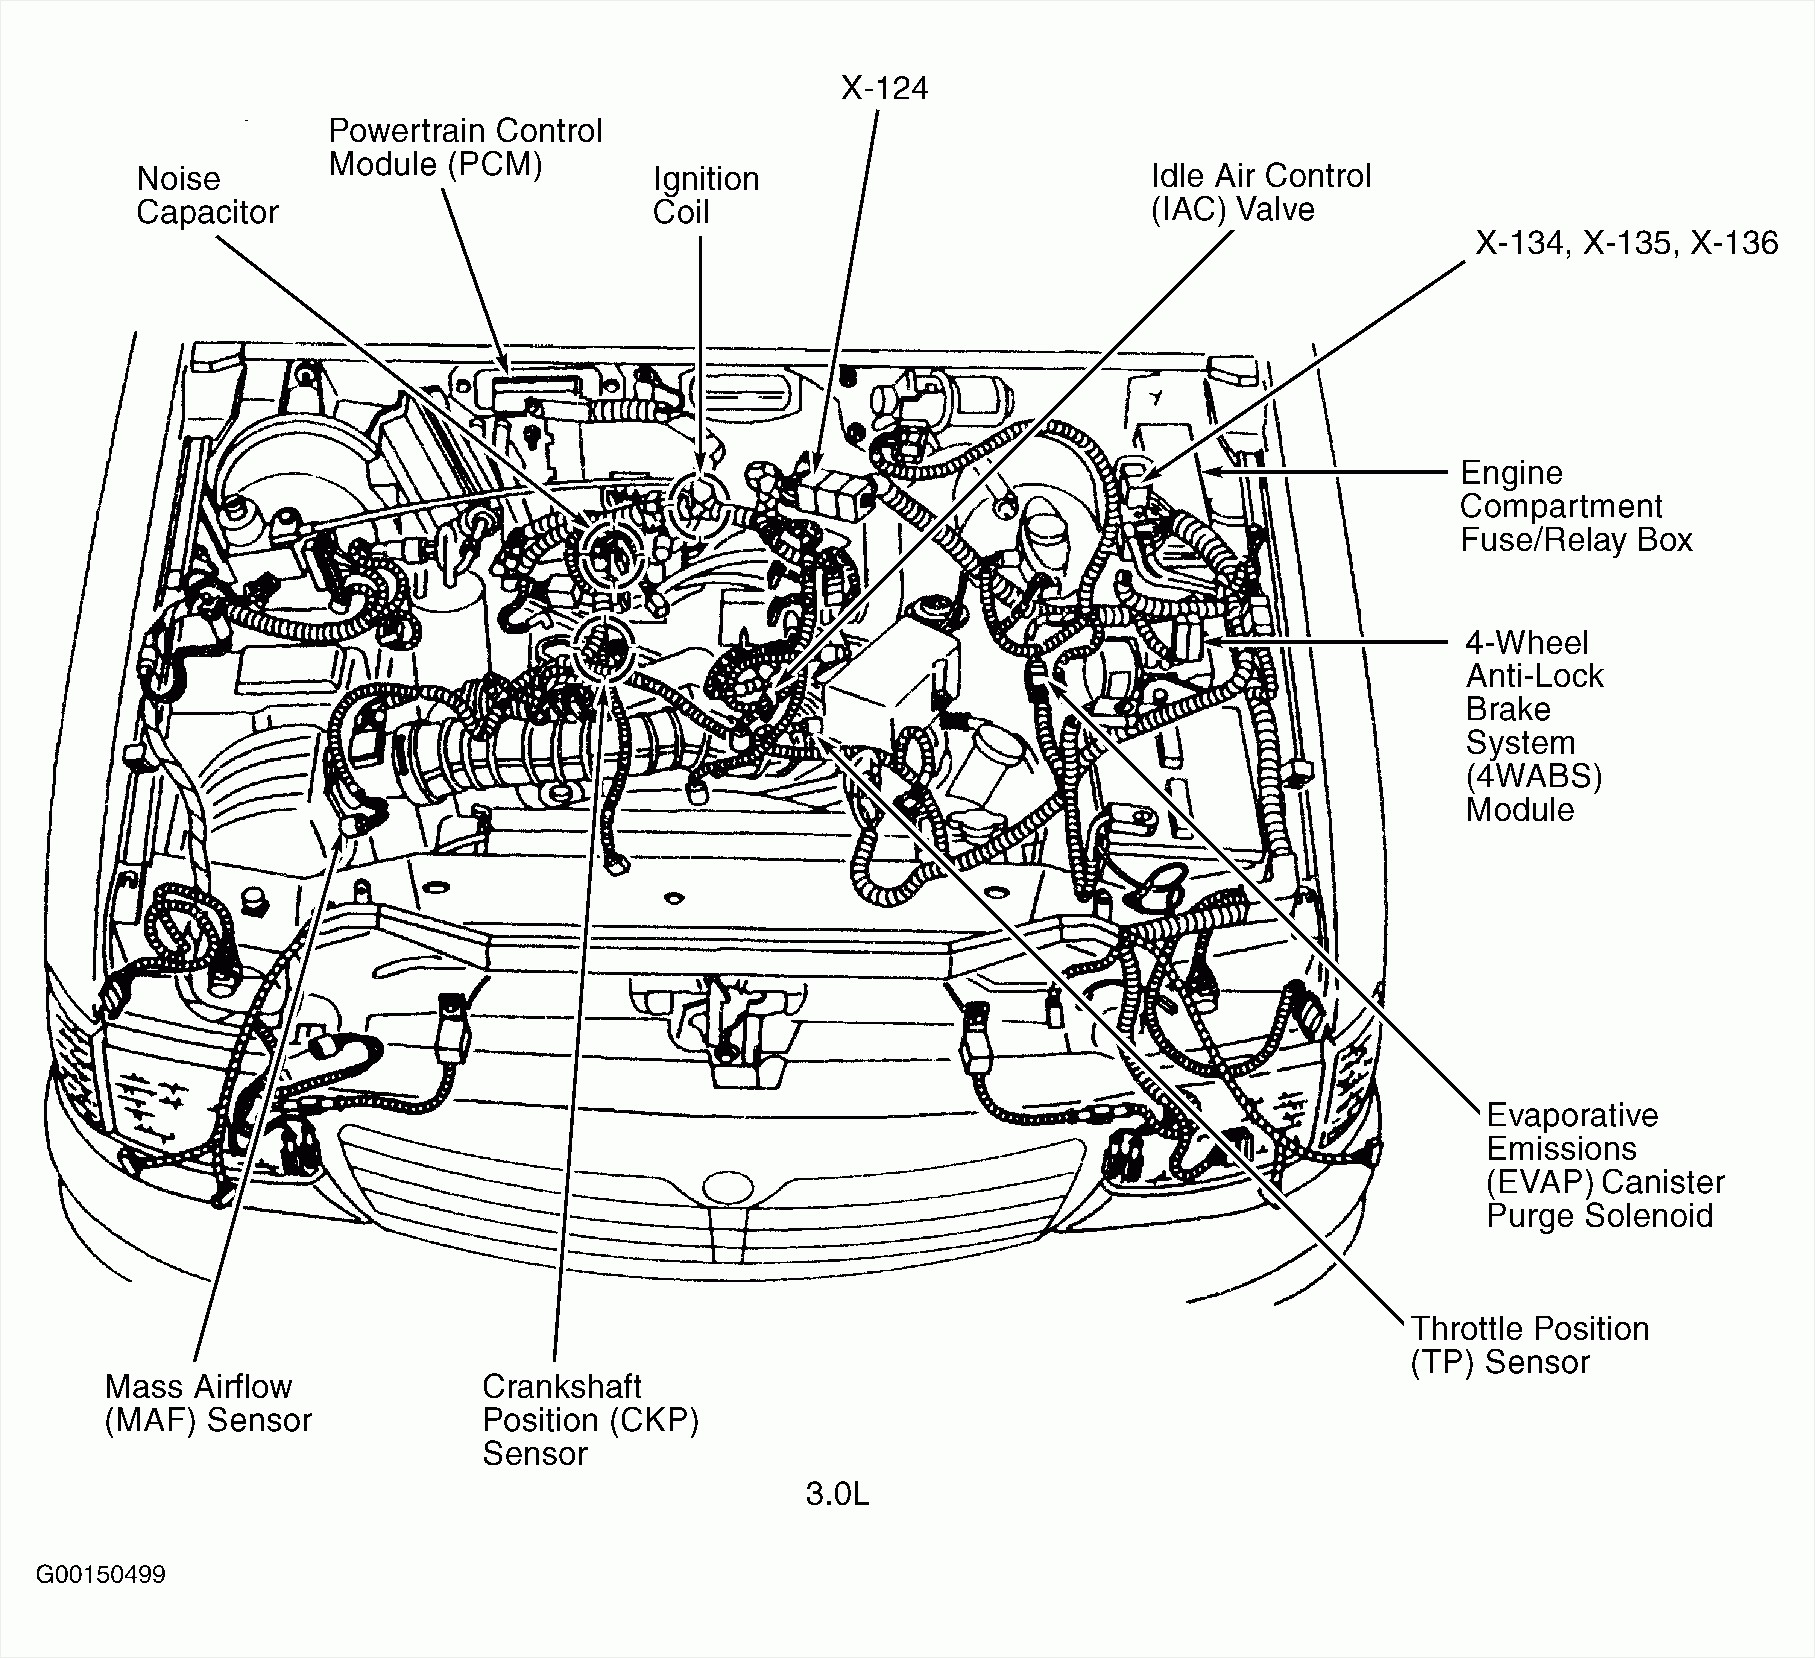 mazda 3 0 v6 engine diagram 2003 introduction to electrical wiring 2002 ford escape parts diagram v6 engine mazda 3 0 engine diagram wiring diagram library u2022 rh wiringhero today ford v6 engine diagram ford escape v6 engine diagram